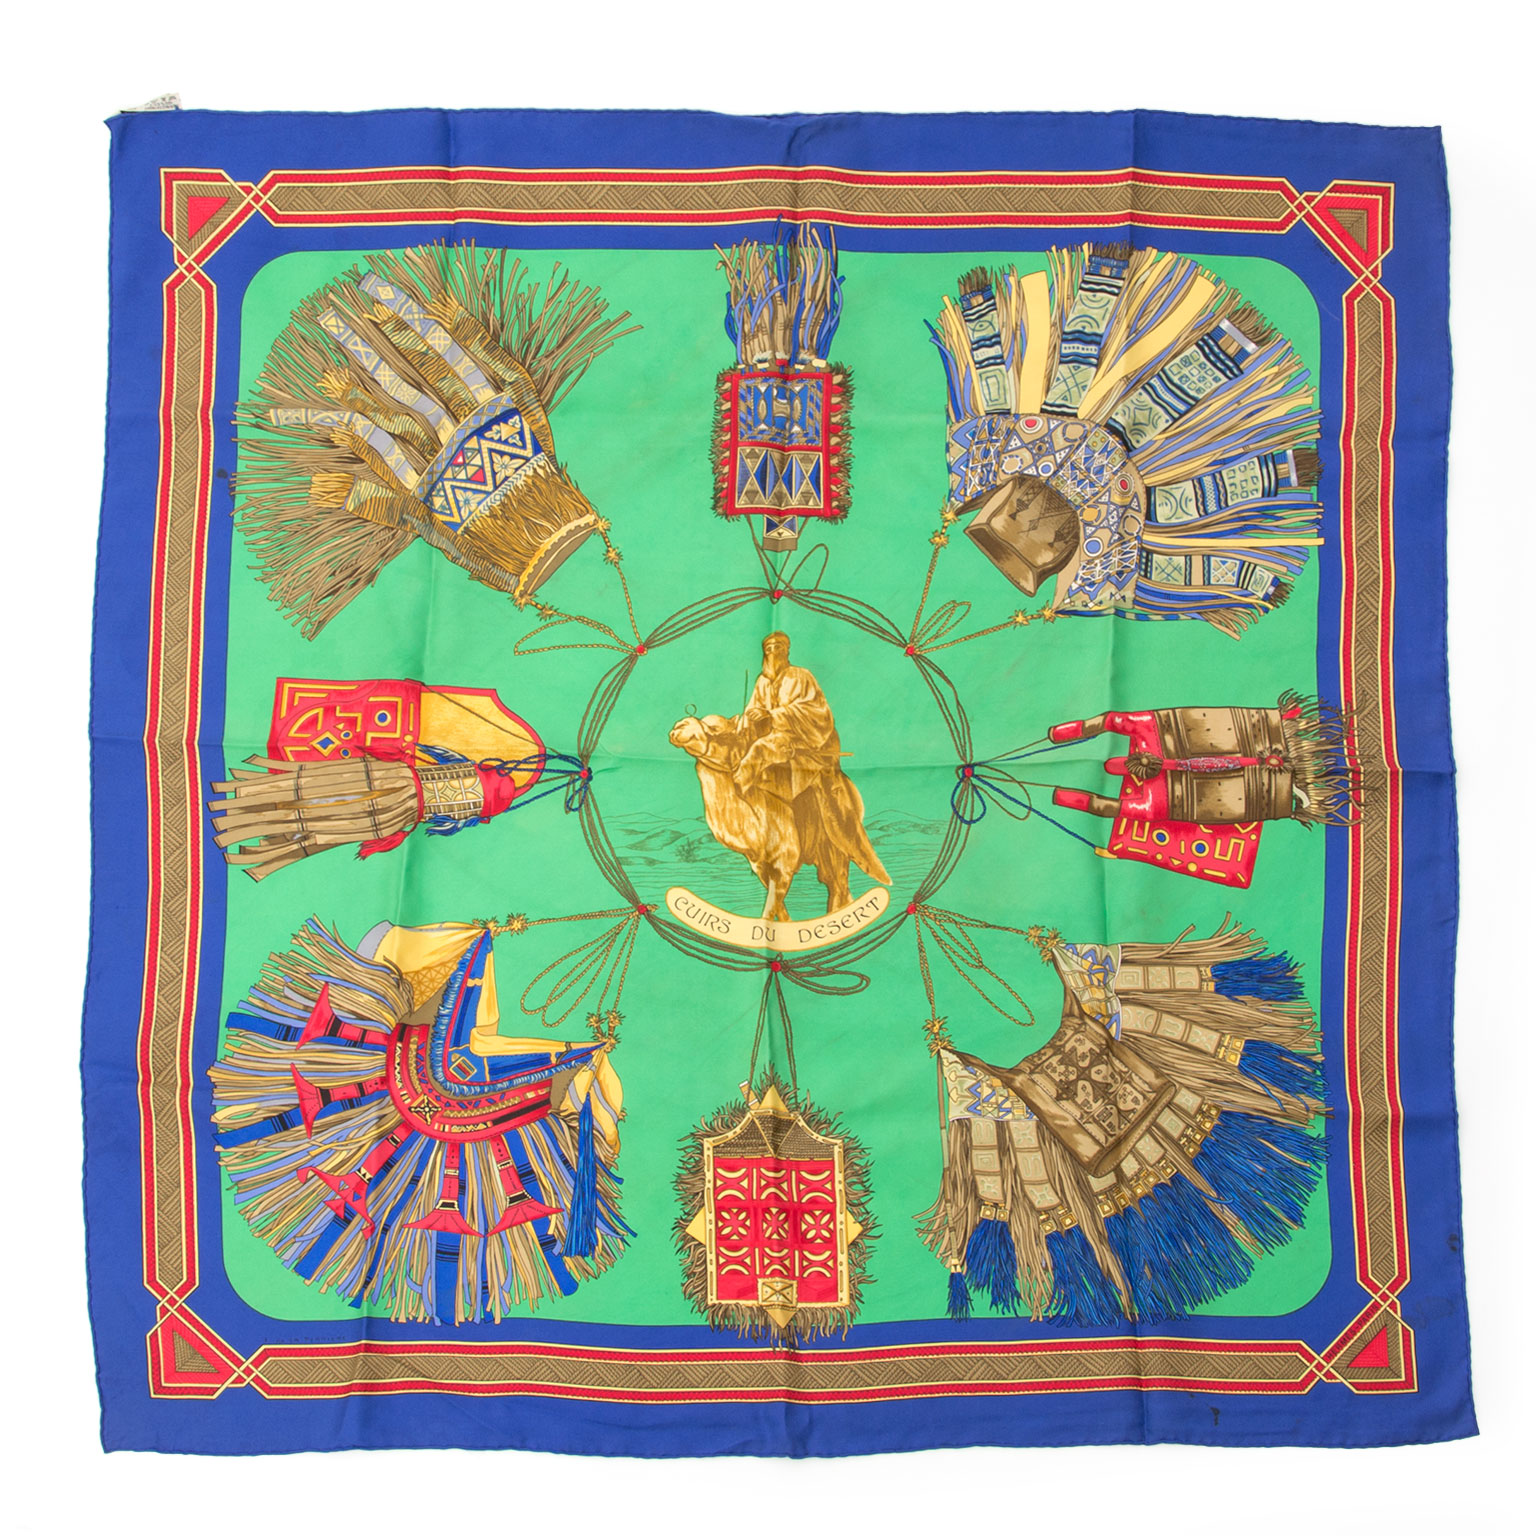 Preowned Hermès Silk Carré Scarf Cuirs Du Desert Green Blue.   Buy authentic secondhand Hermès scarves at the right price at LabelLOV vintage webshop.  Safe and secure online shopping. Koop authentieke tweedehands Hermès sjaals met de juiste prijs bij Lab